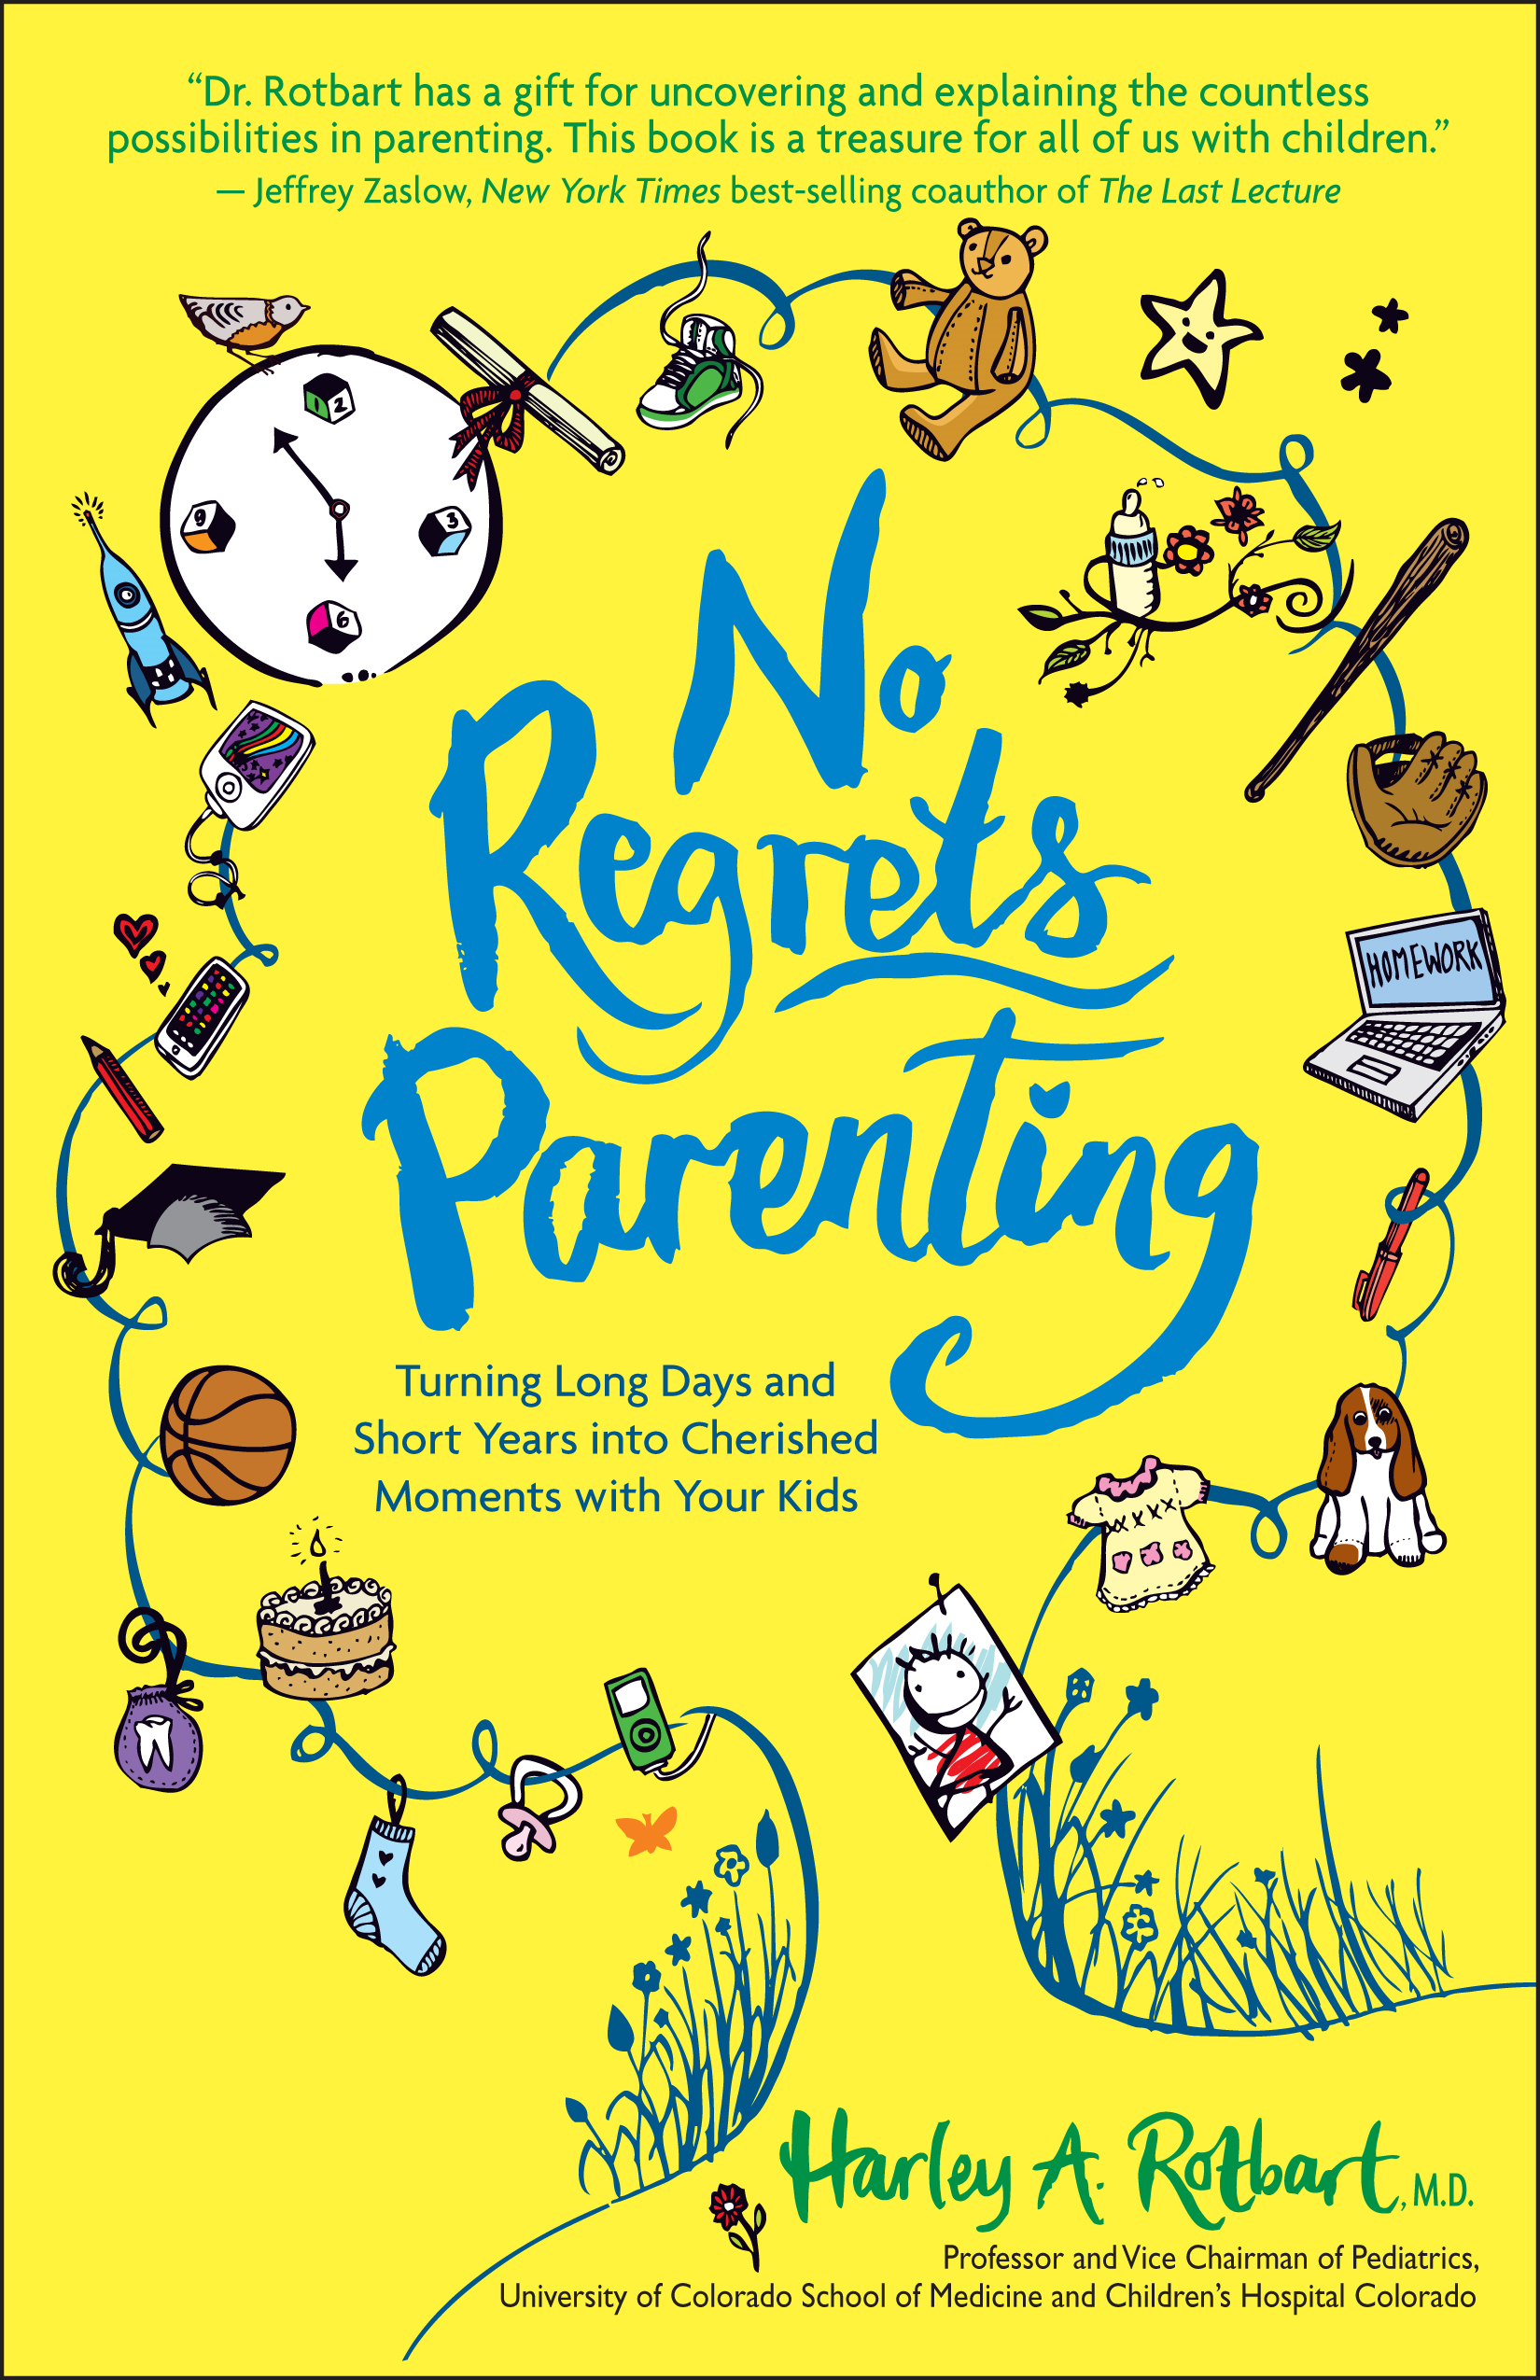 No Regrets Parenting: Turning Long Days and Short Years into Cherished Moments with Your Kids